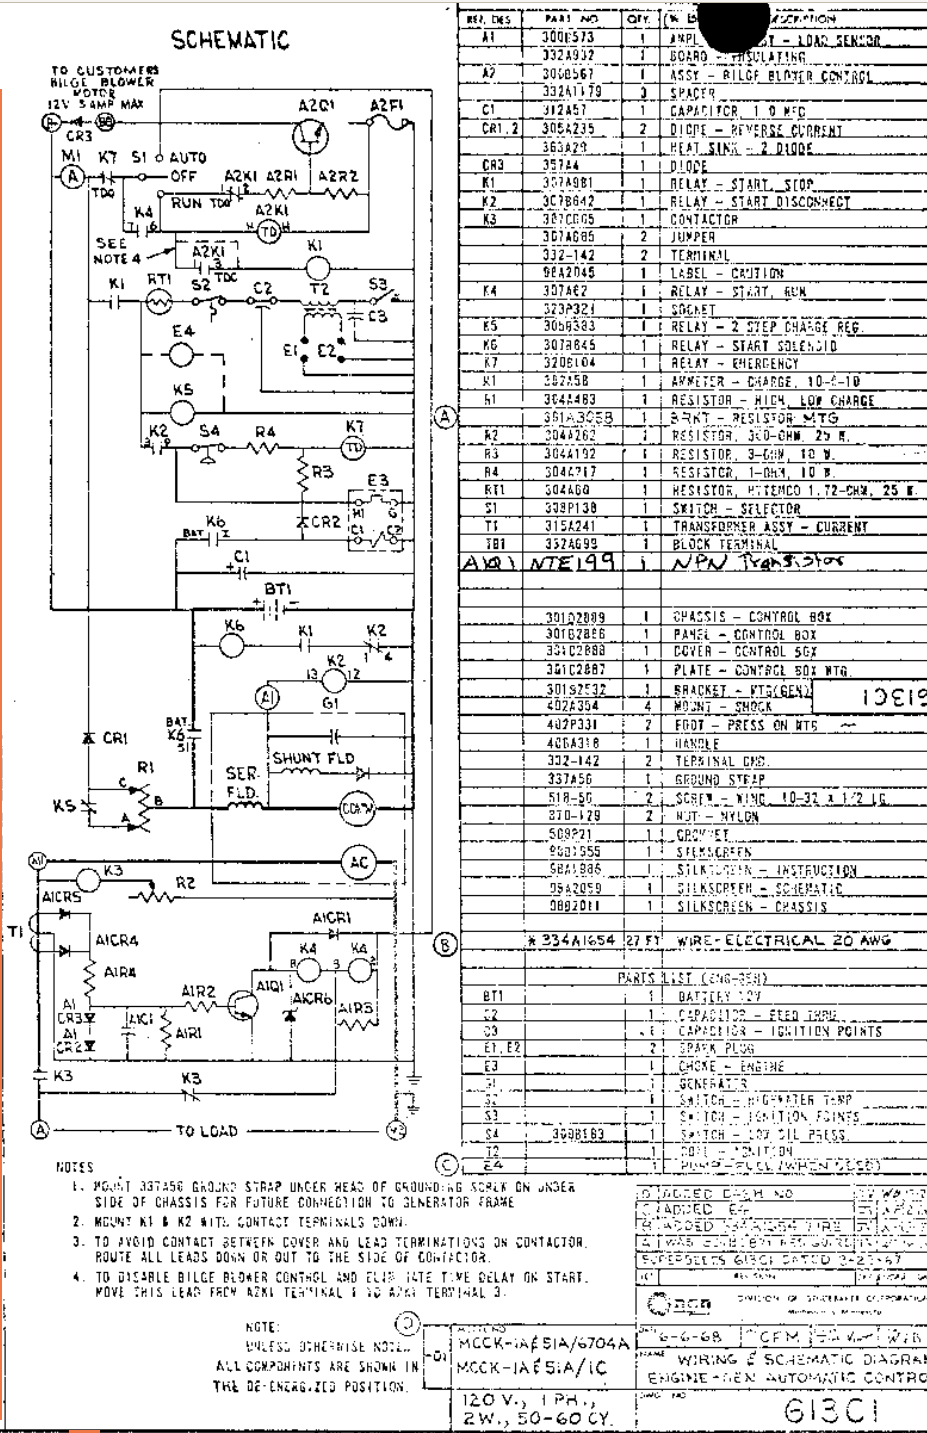 6500 MCCK generator loses fuel pump prime after sitting for ... Onan Mcck Generator Wiring Diagram on